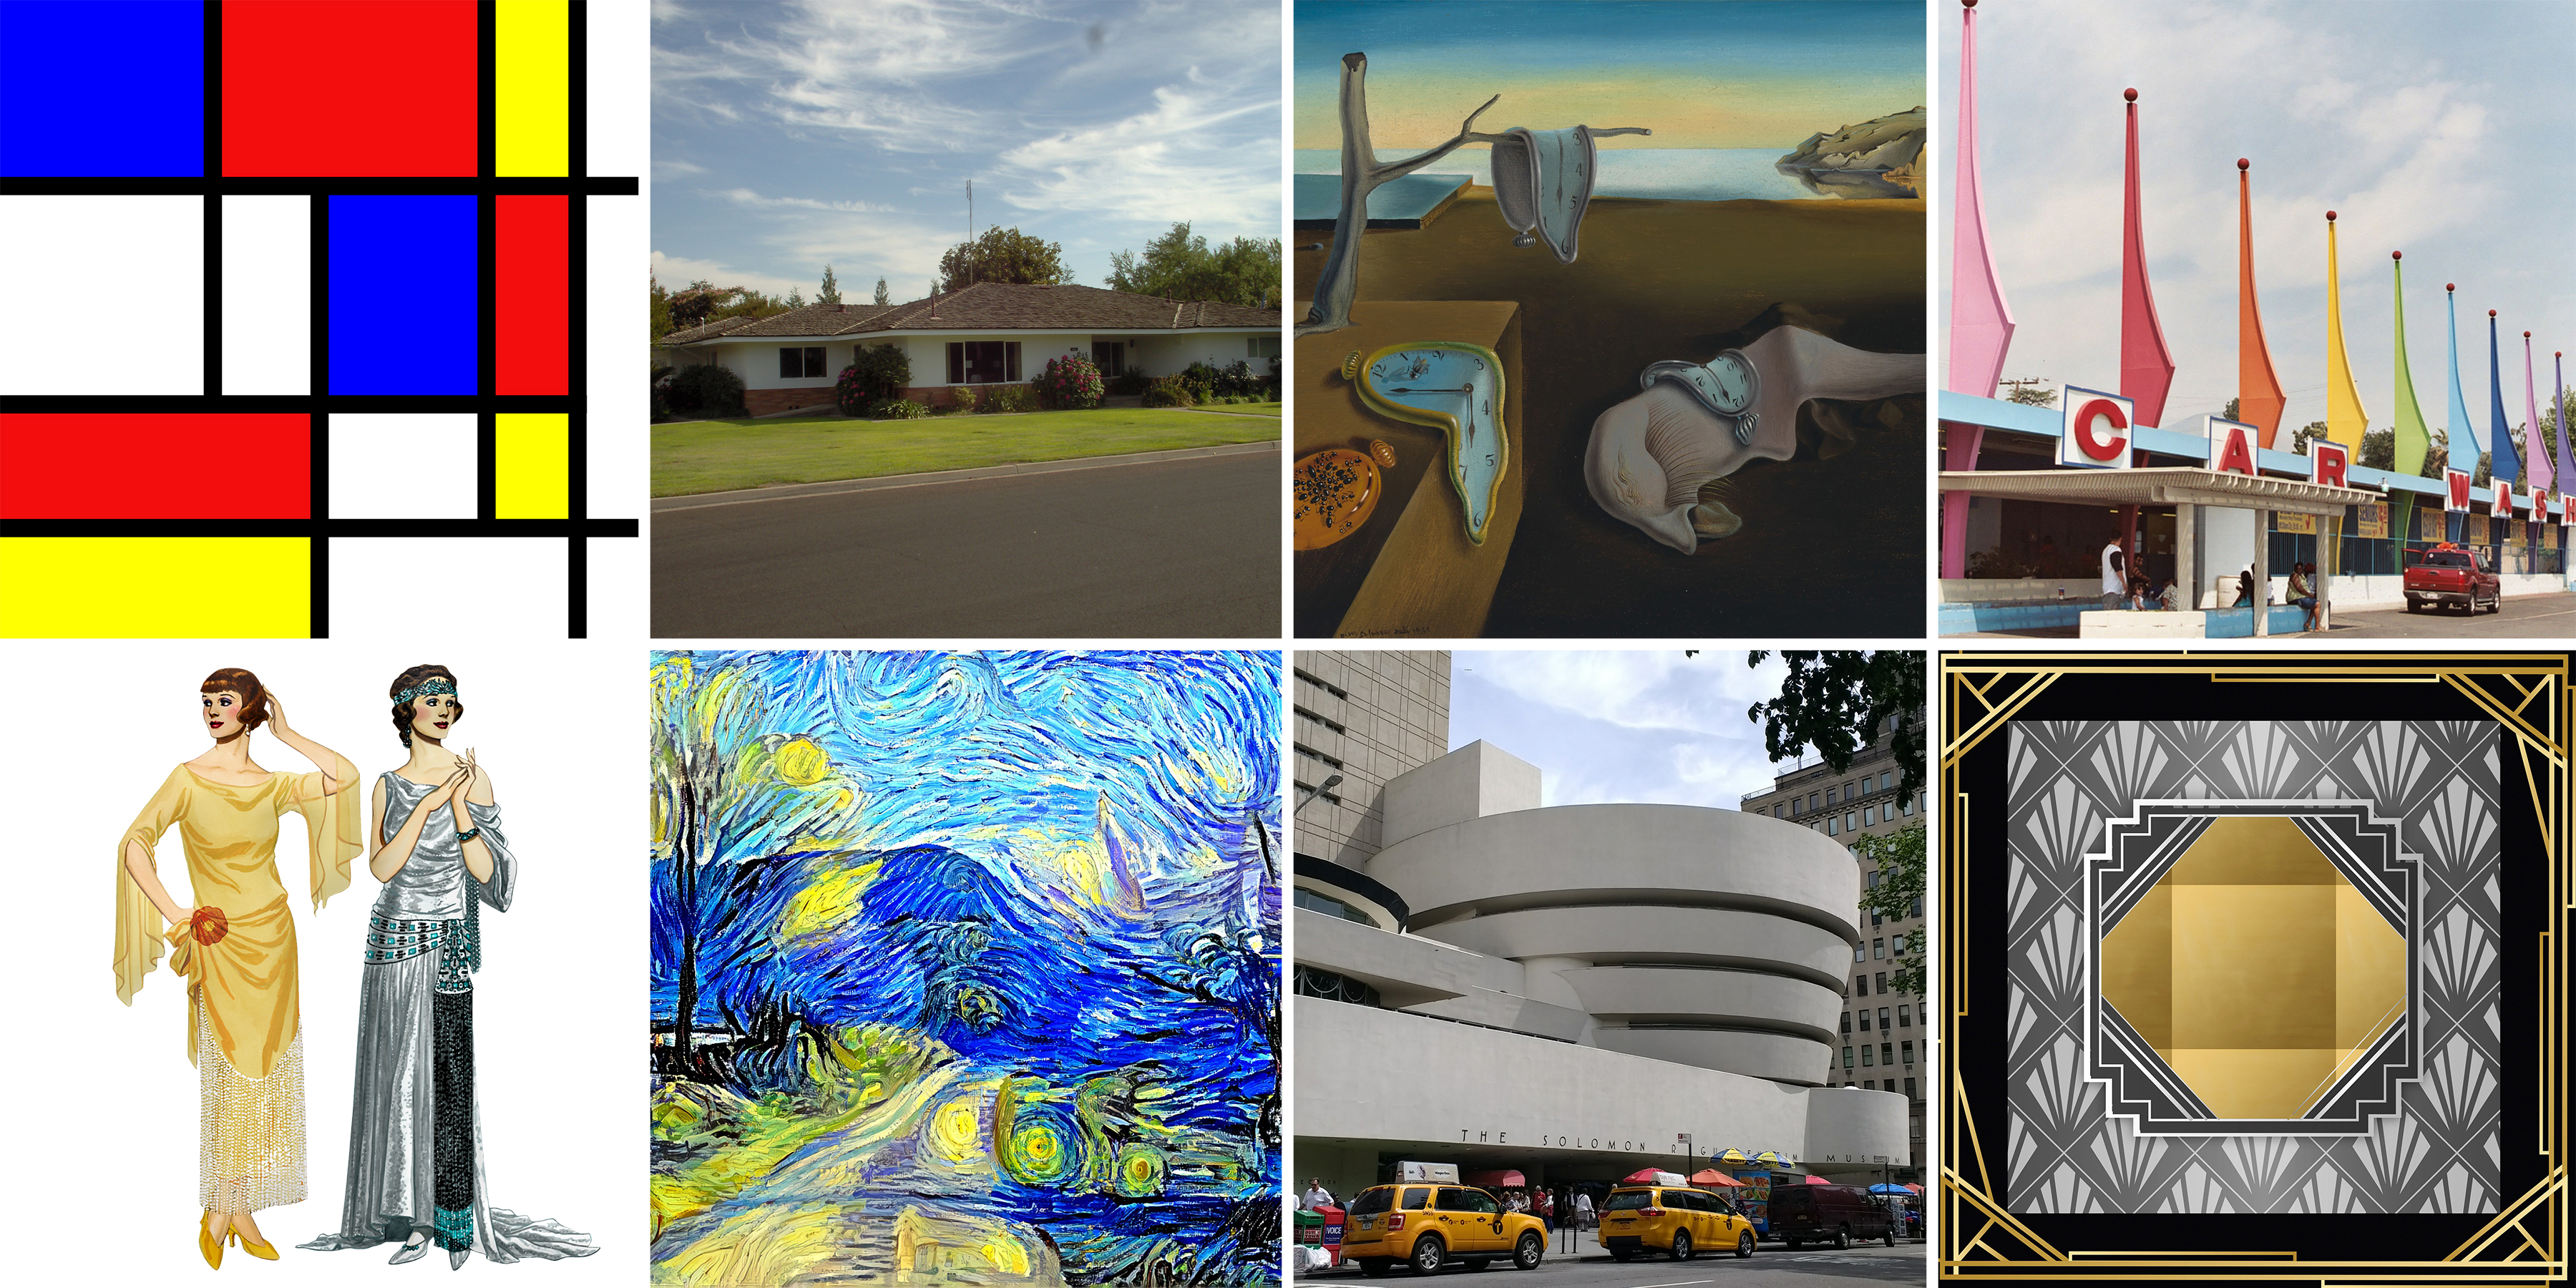 collage of art and buildings that are mistaken for Art Noiveau